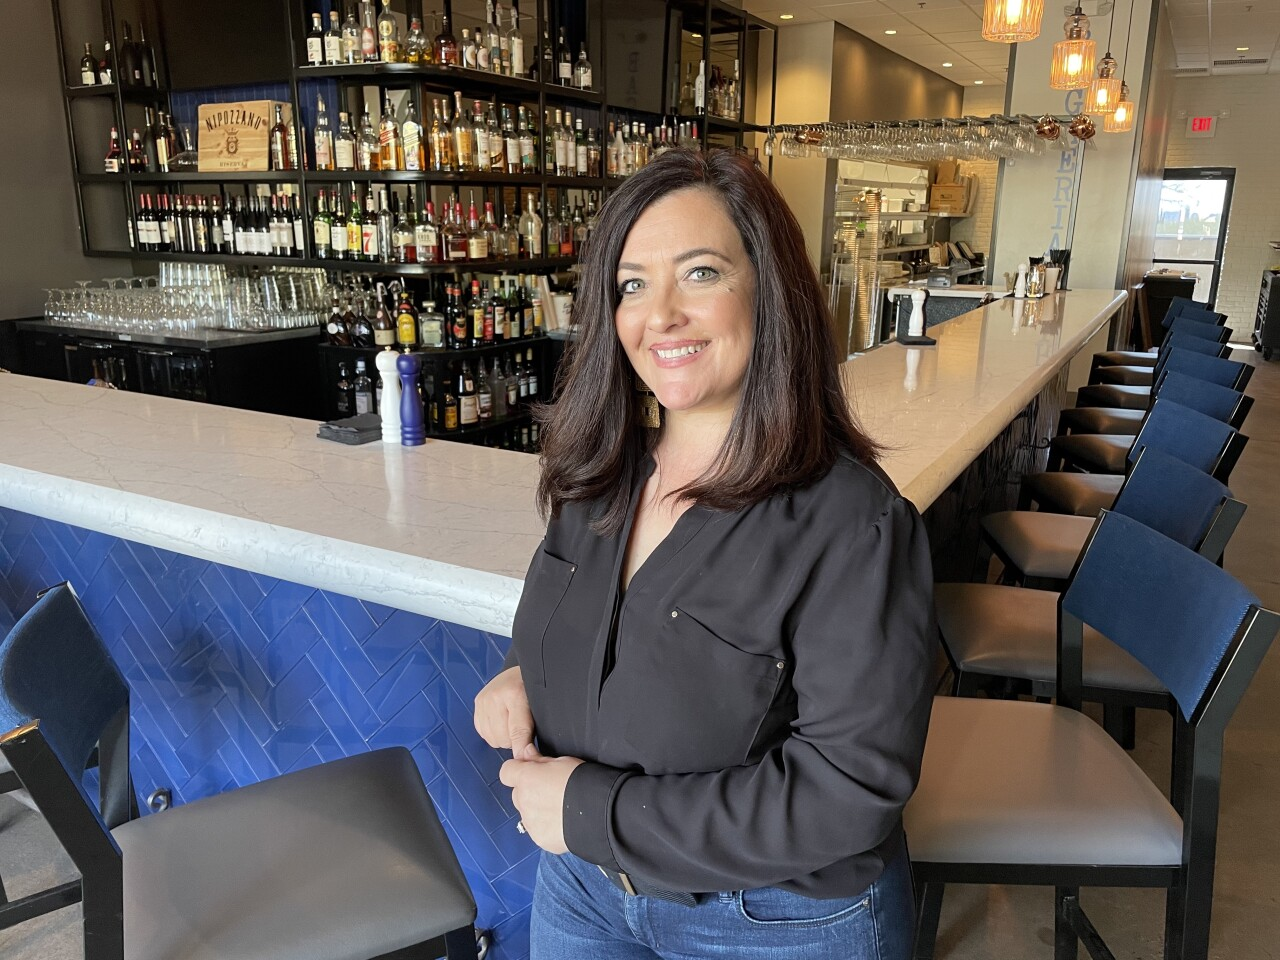 Melissa Maggiore, owner of The Italian Daughter in north Scottsdale.